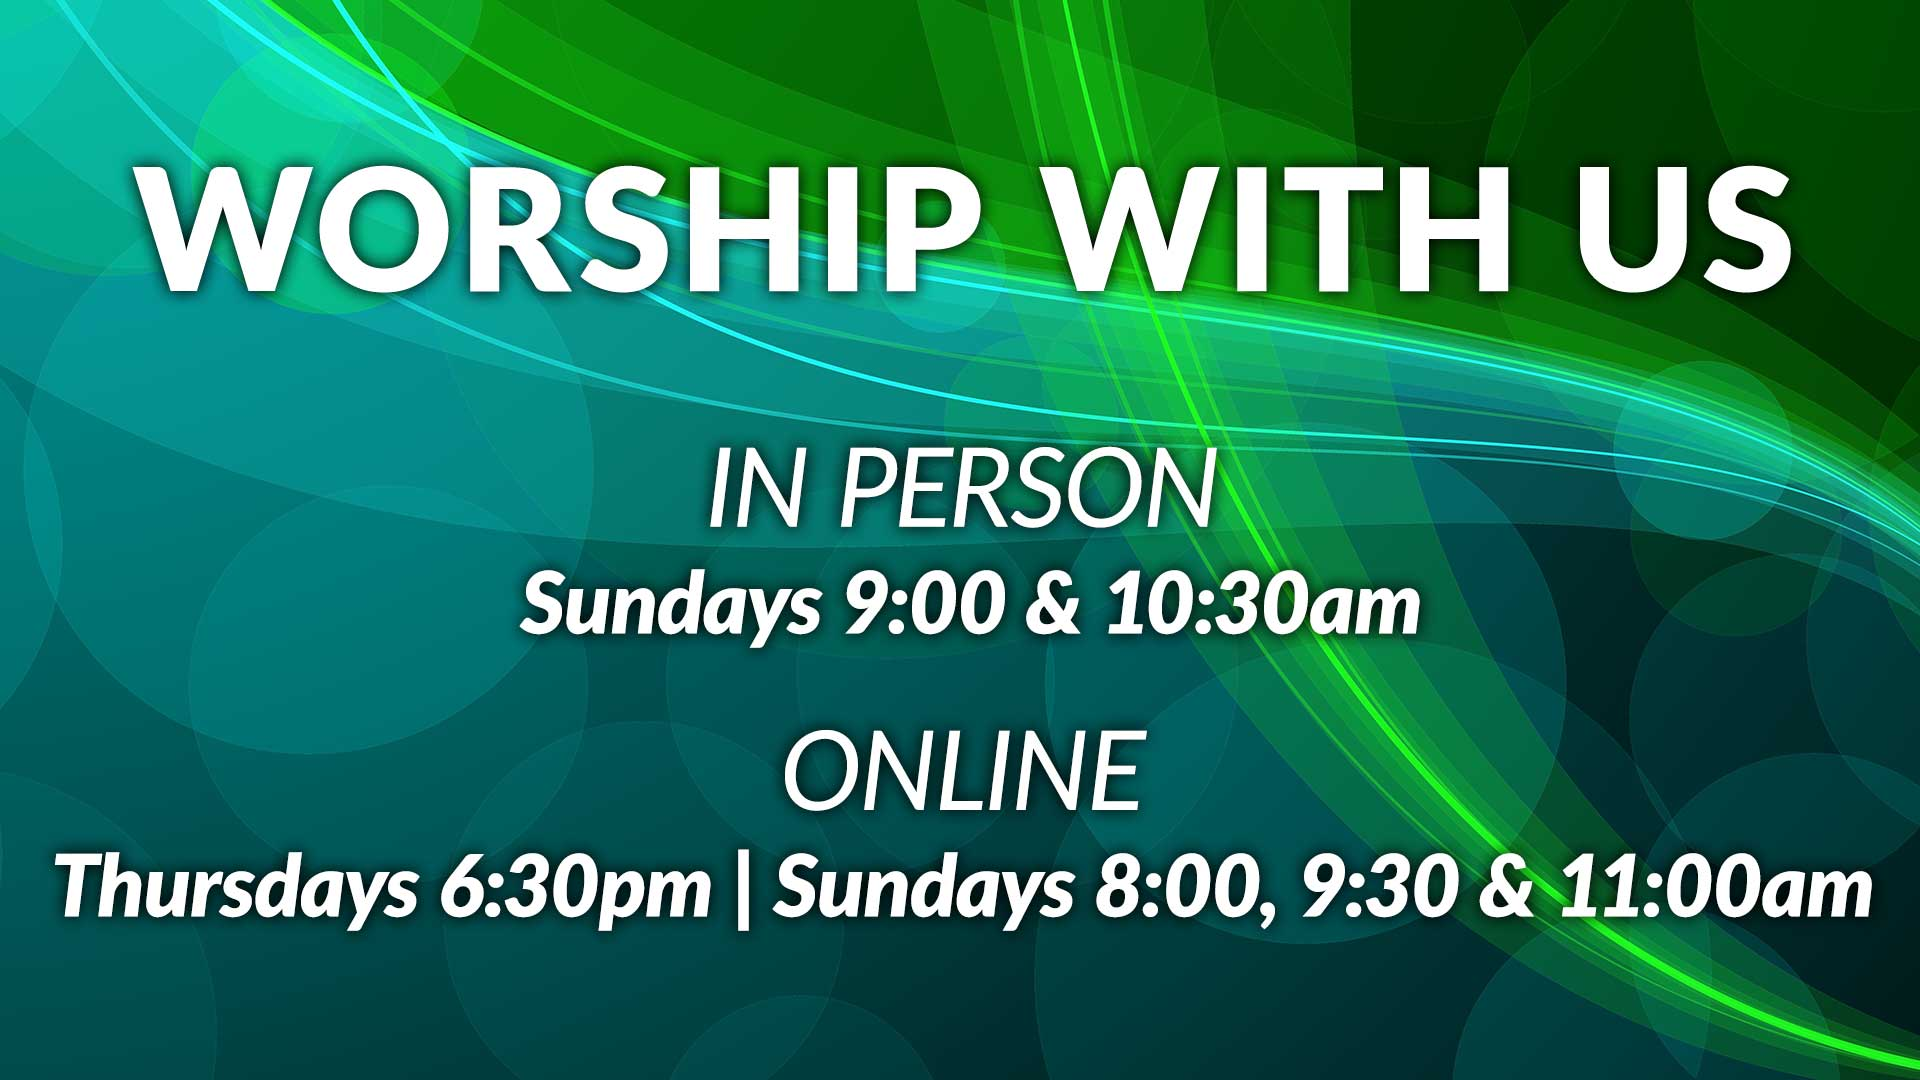 Worship with Us - Online and In Person